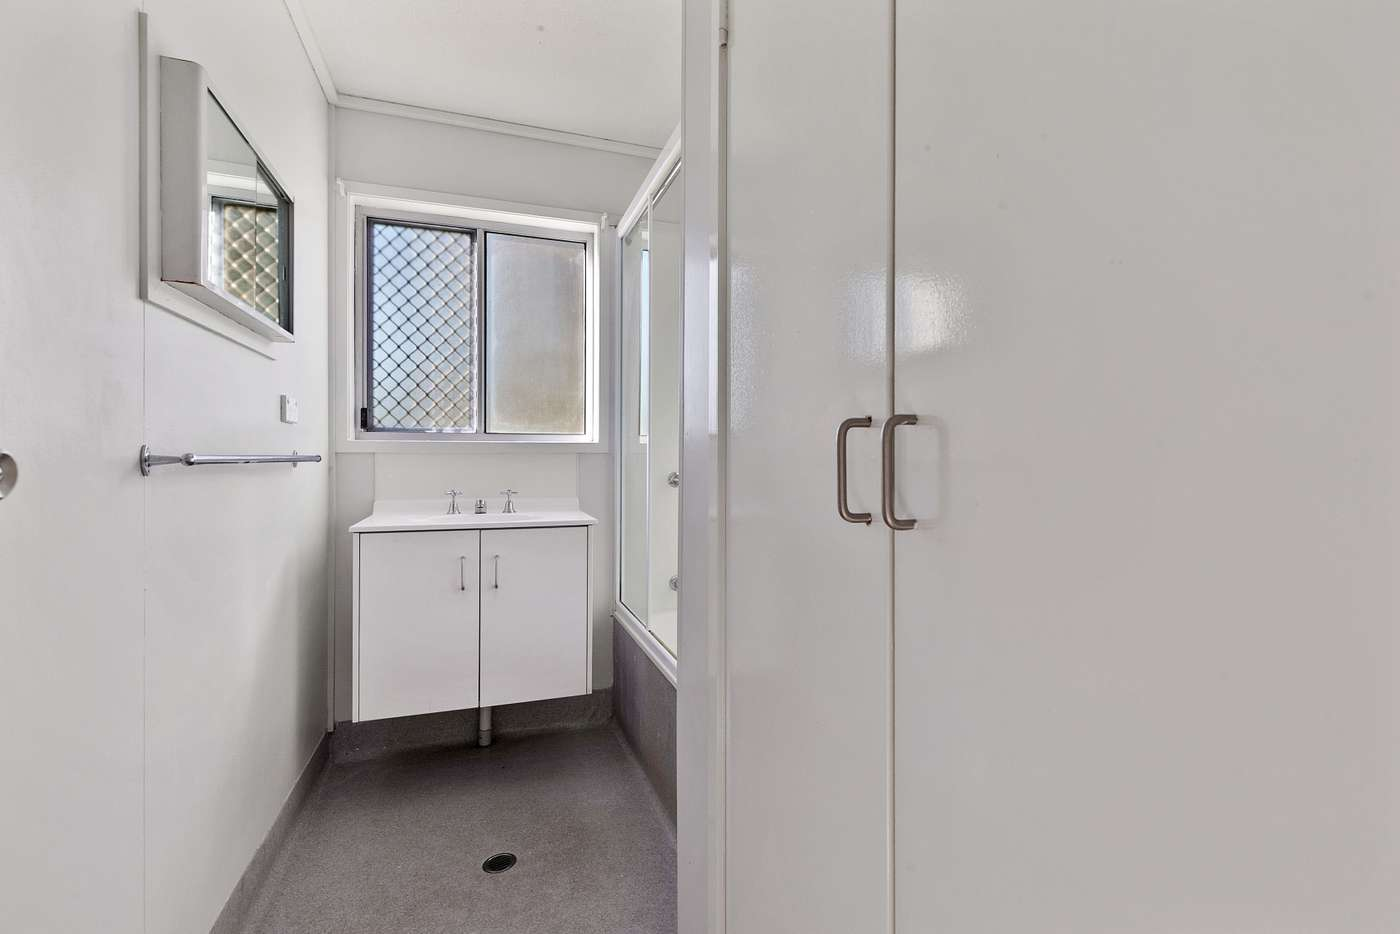 Seventh view of Homely house listing, 9 Rofail Court, Thorneside QLD 4158